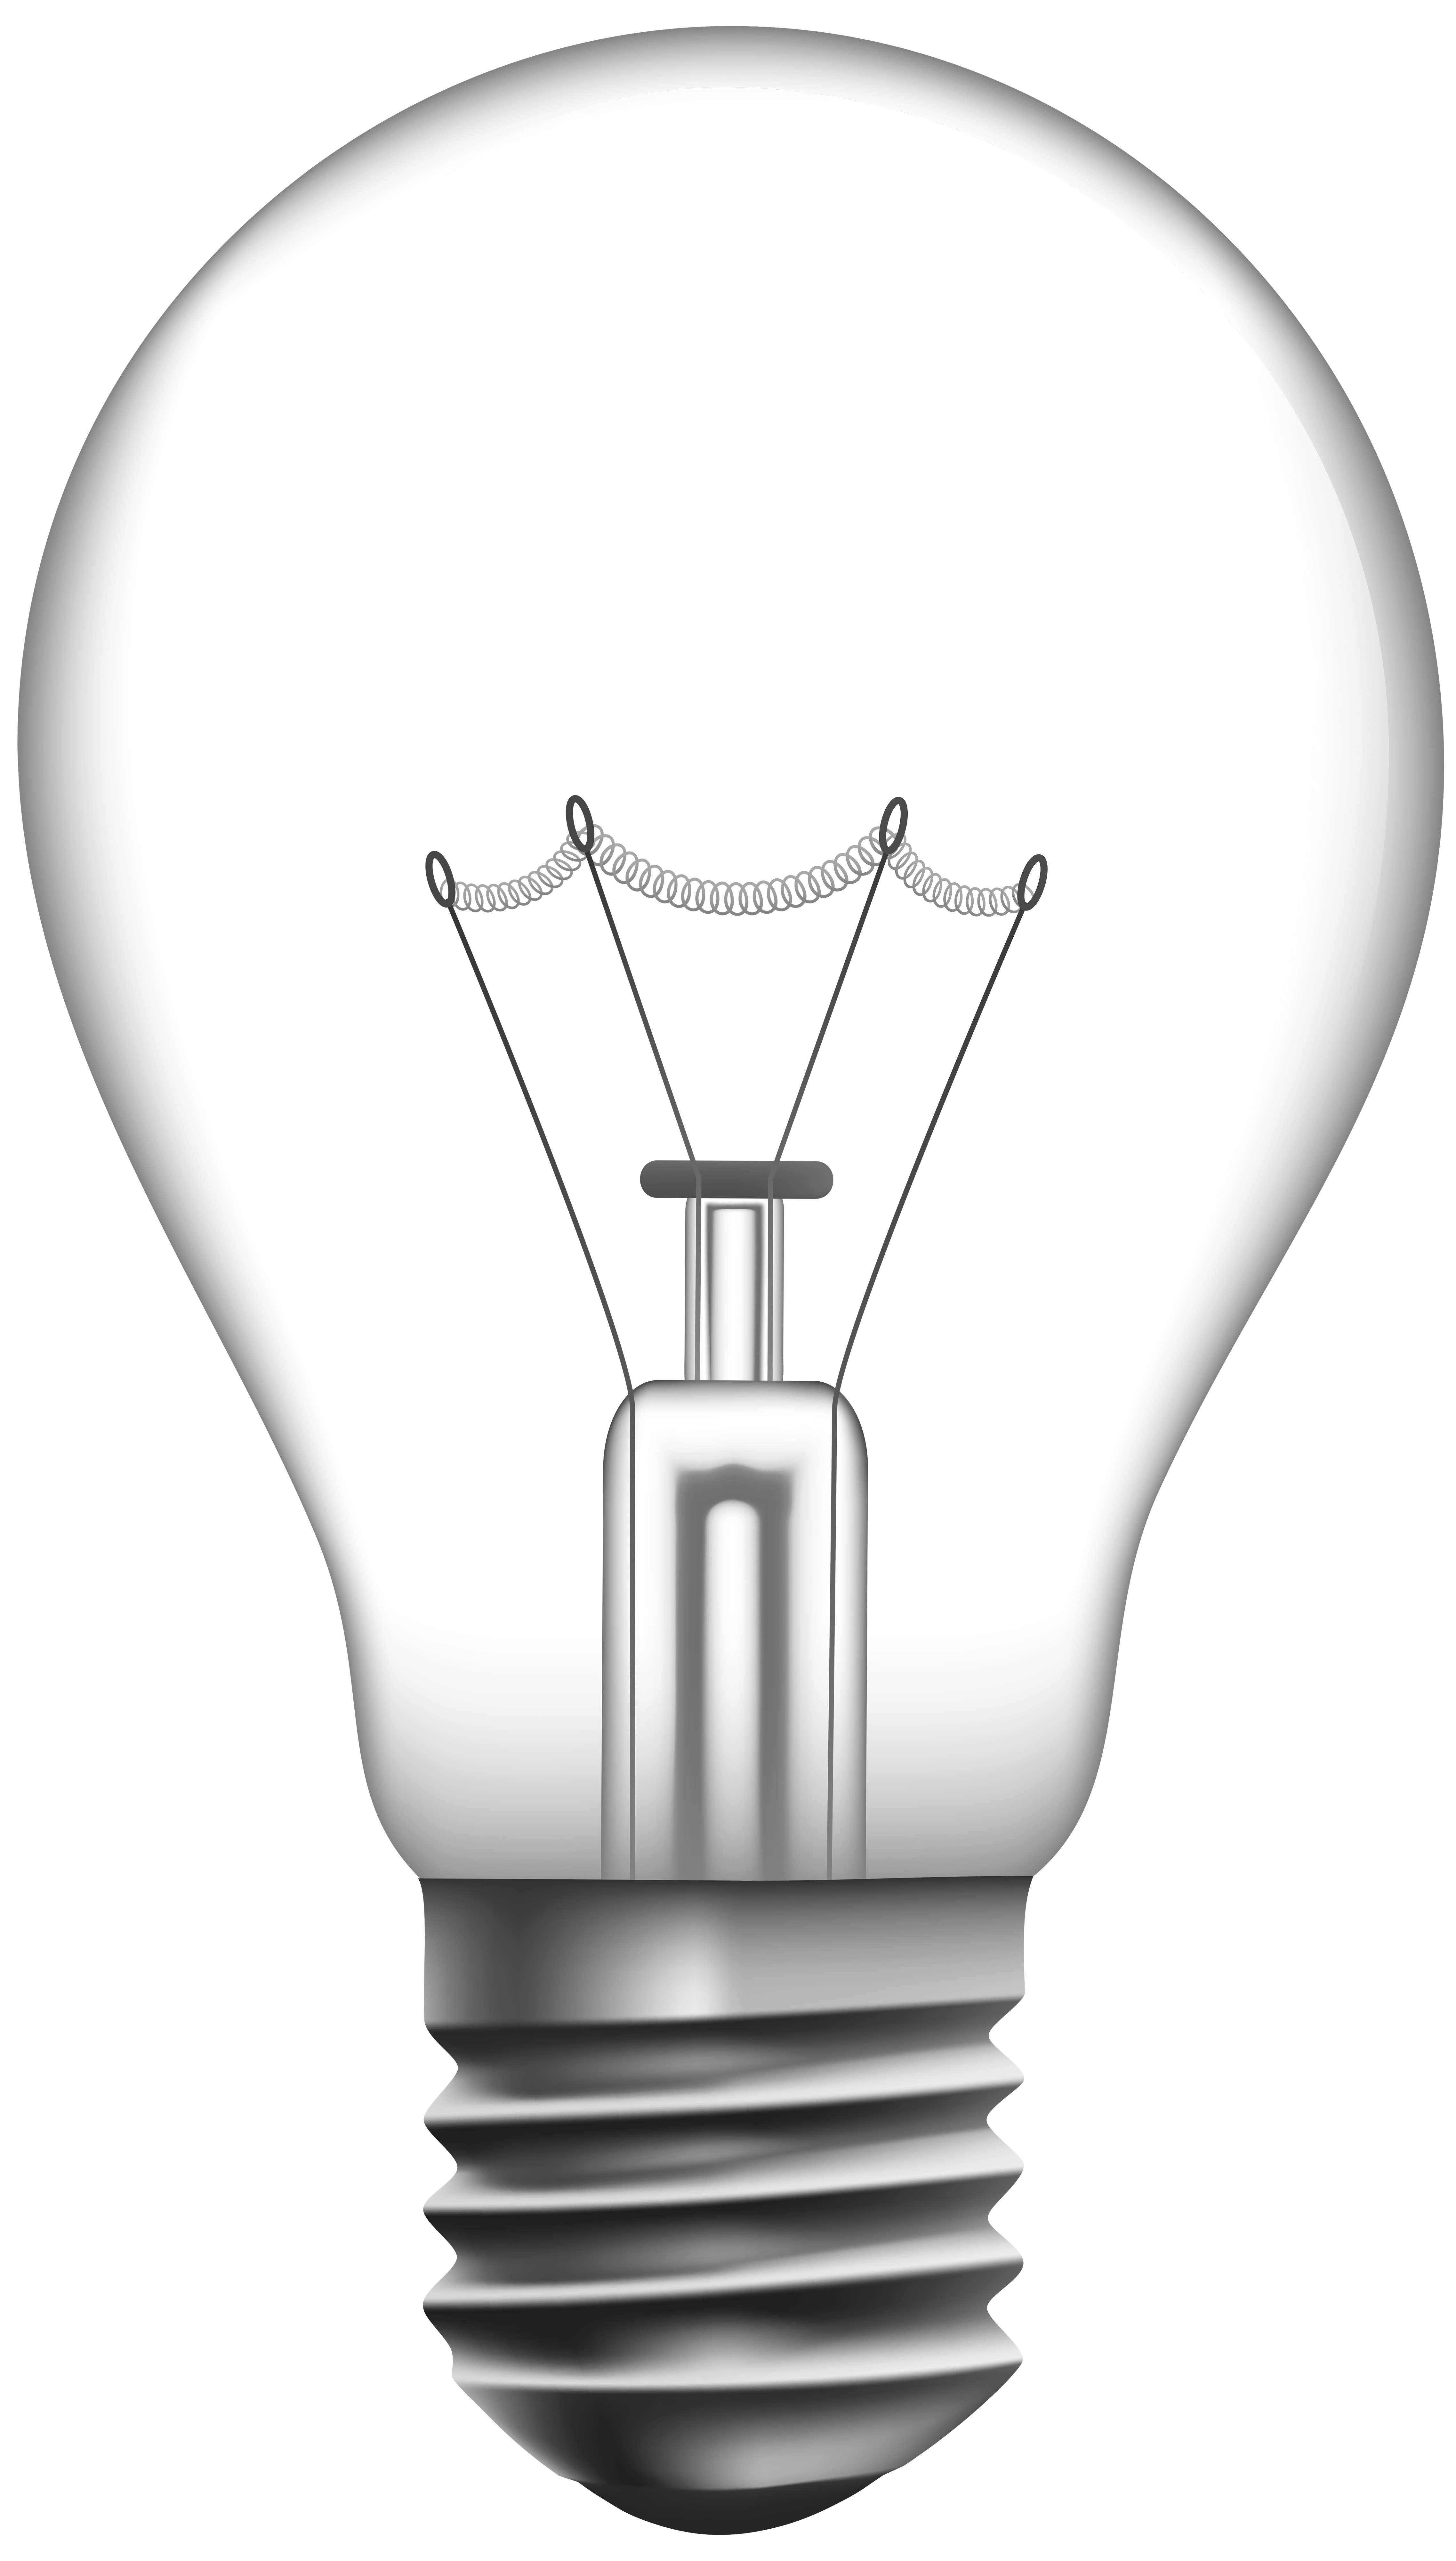 Electric Light Bulb Image